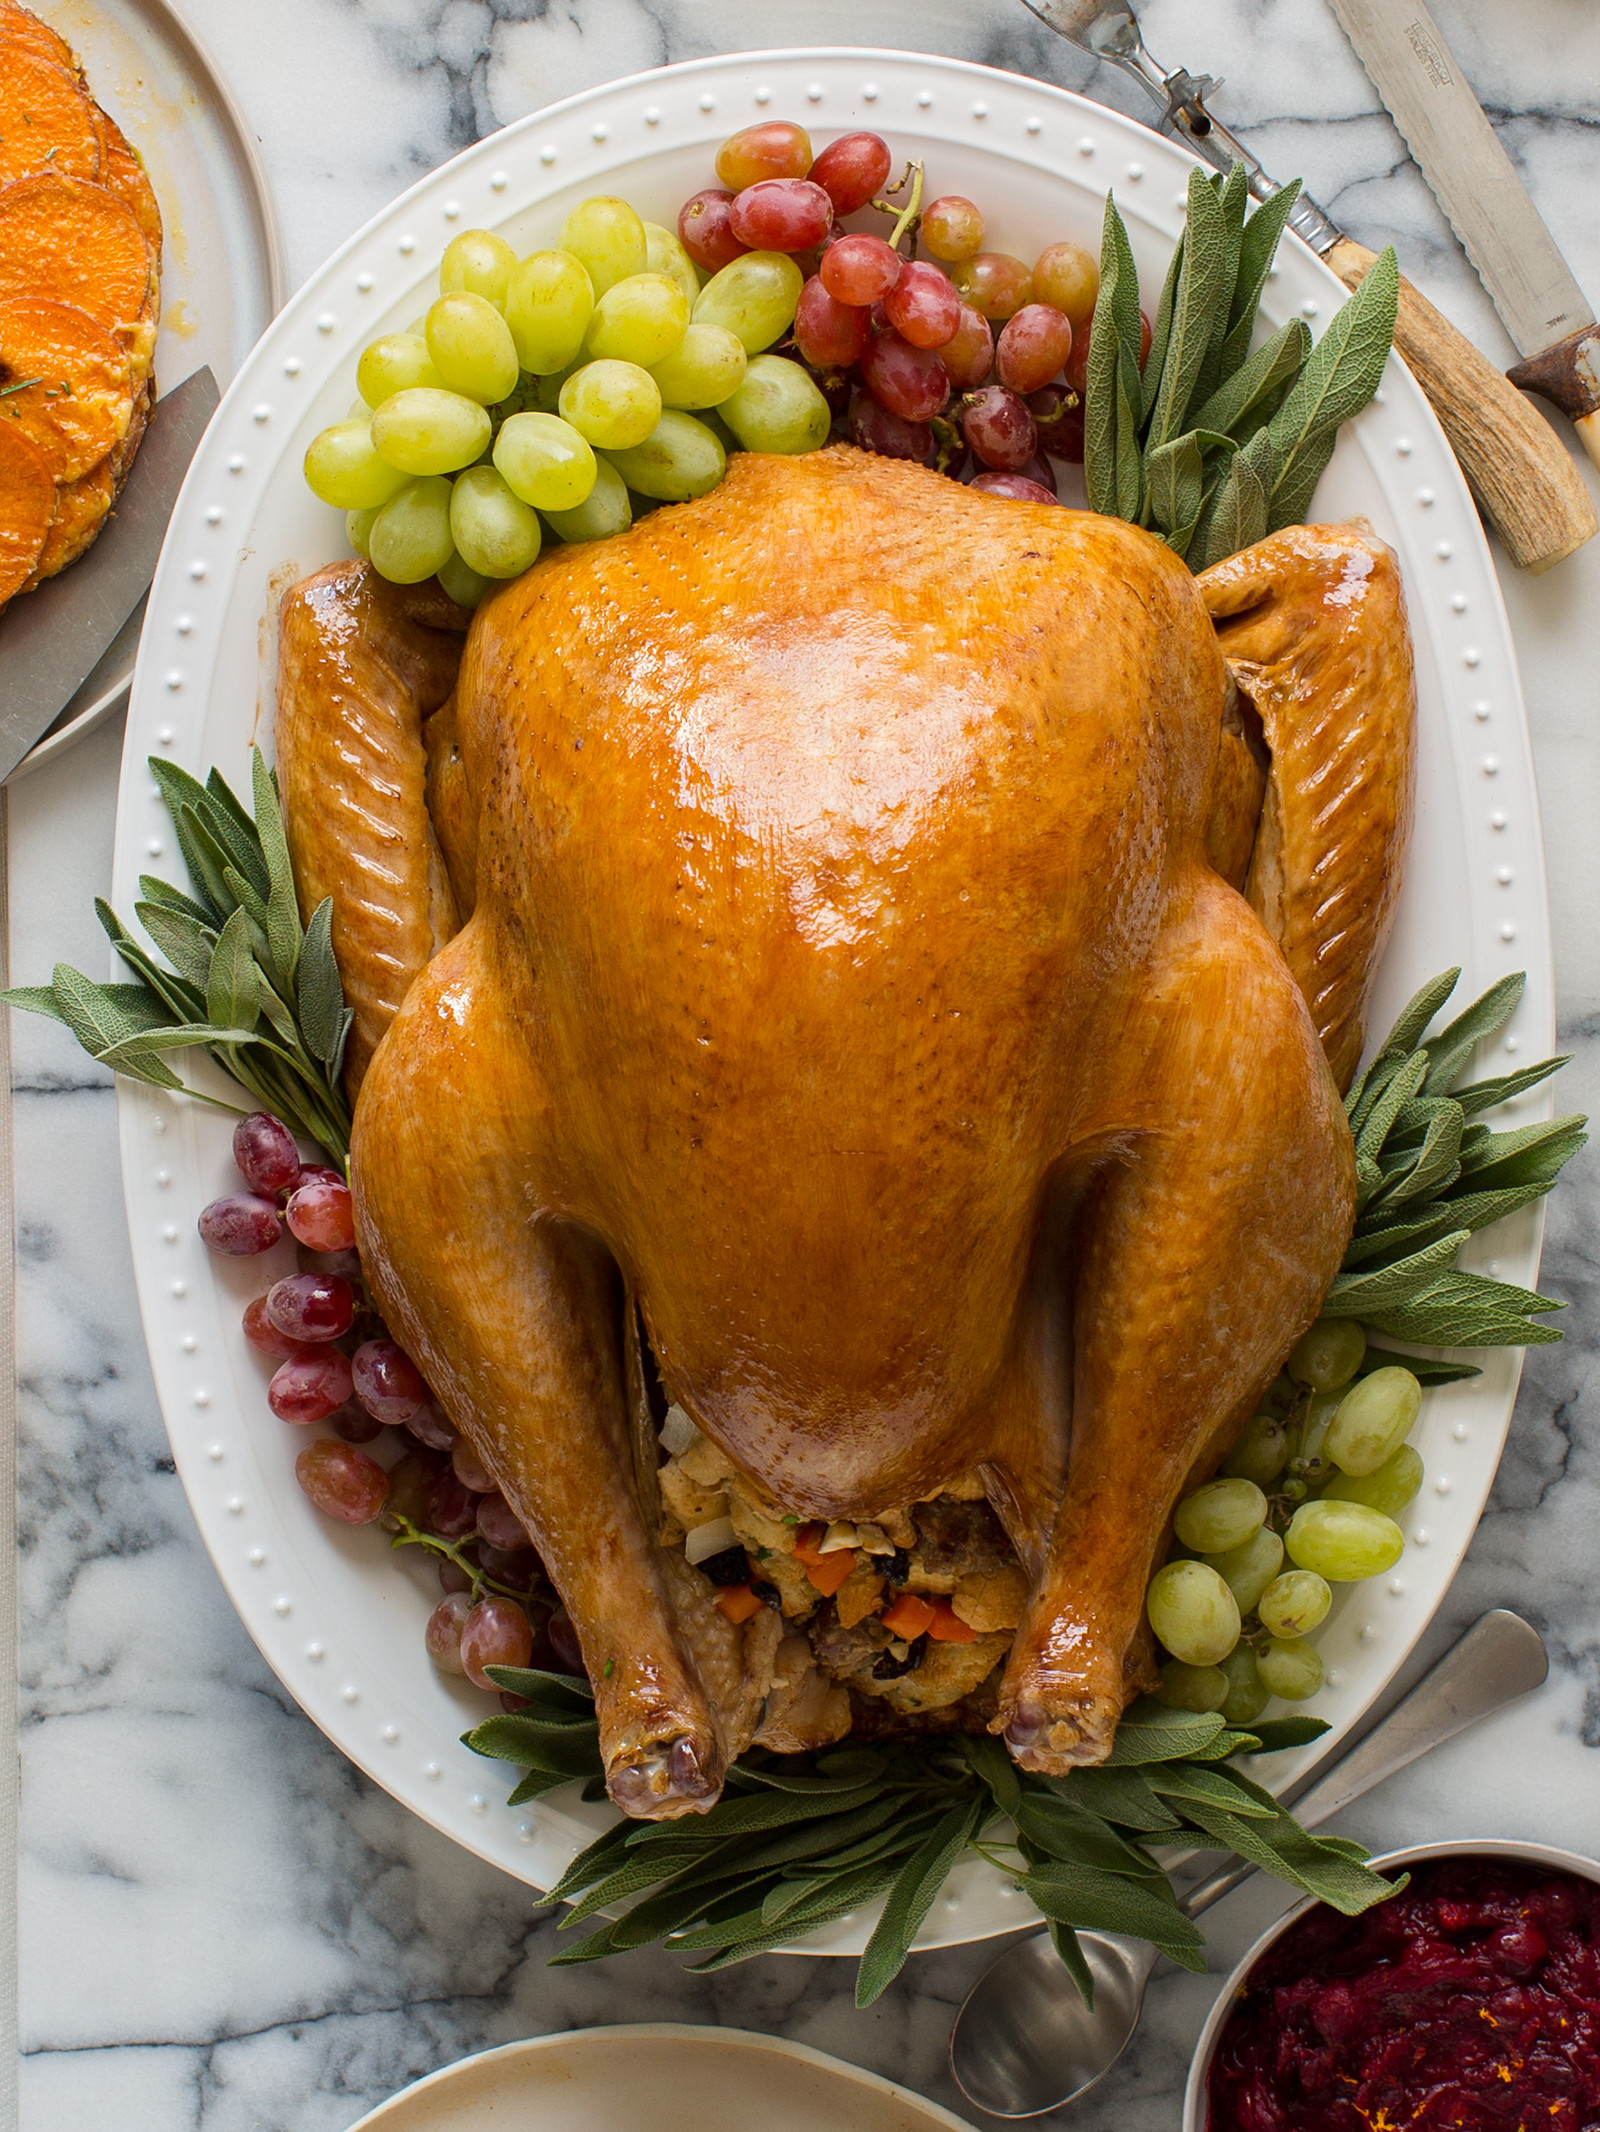 Roast Turkey Recipes Thanksgiving  Citrus and Herb Roasted Turkey Thanksgiving